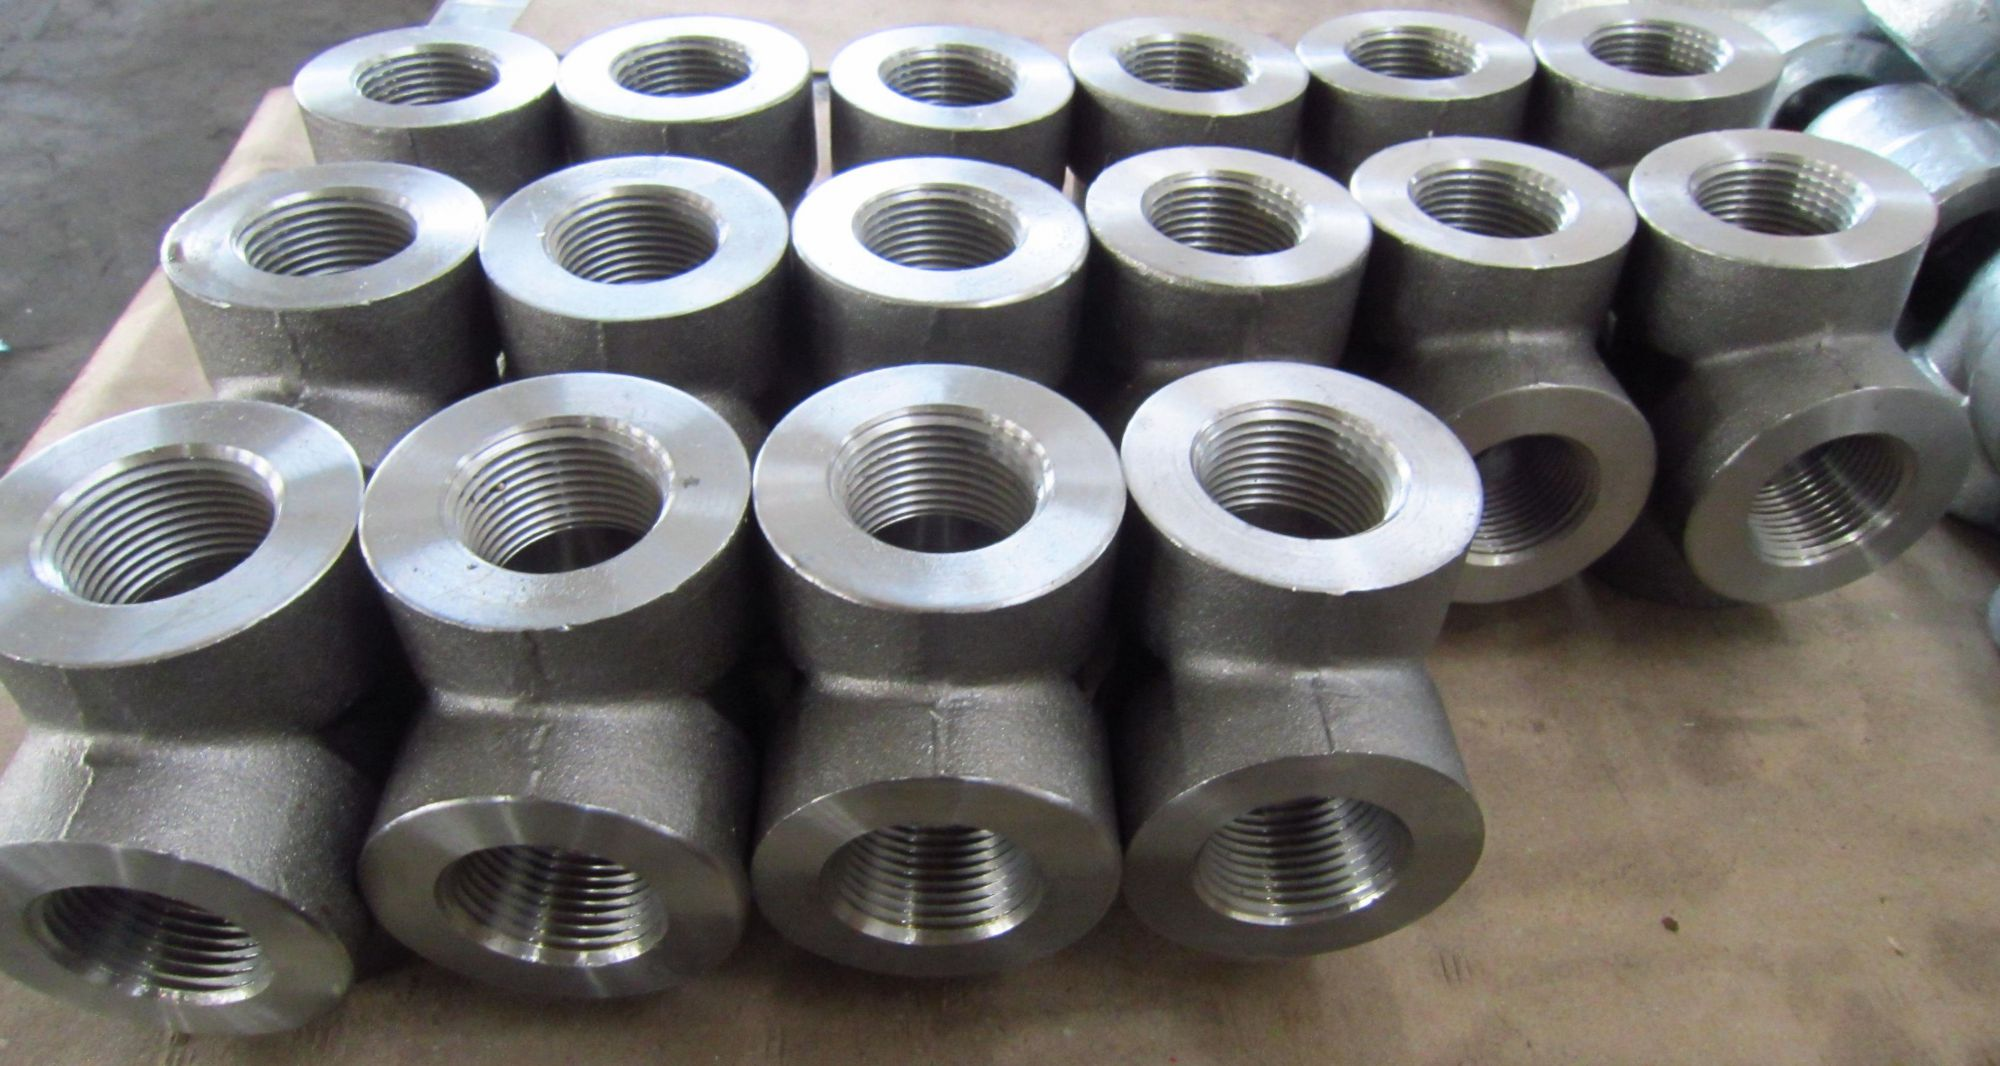 ASTM A105 Hexagon Plugs, DN50, PN400, NPT Ends